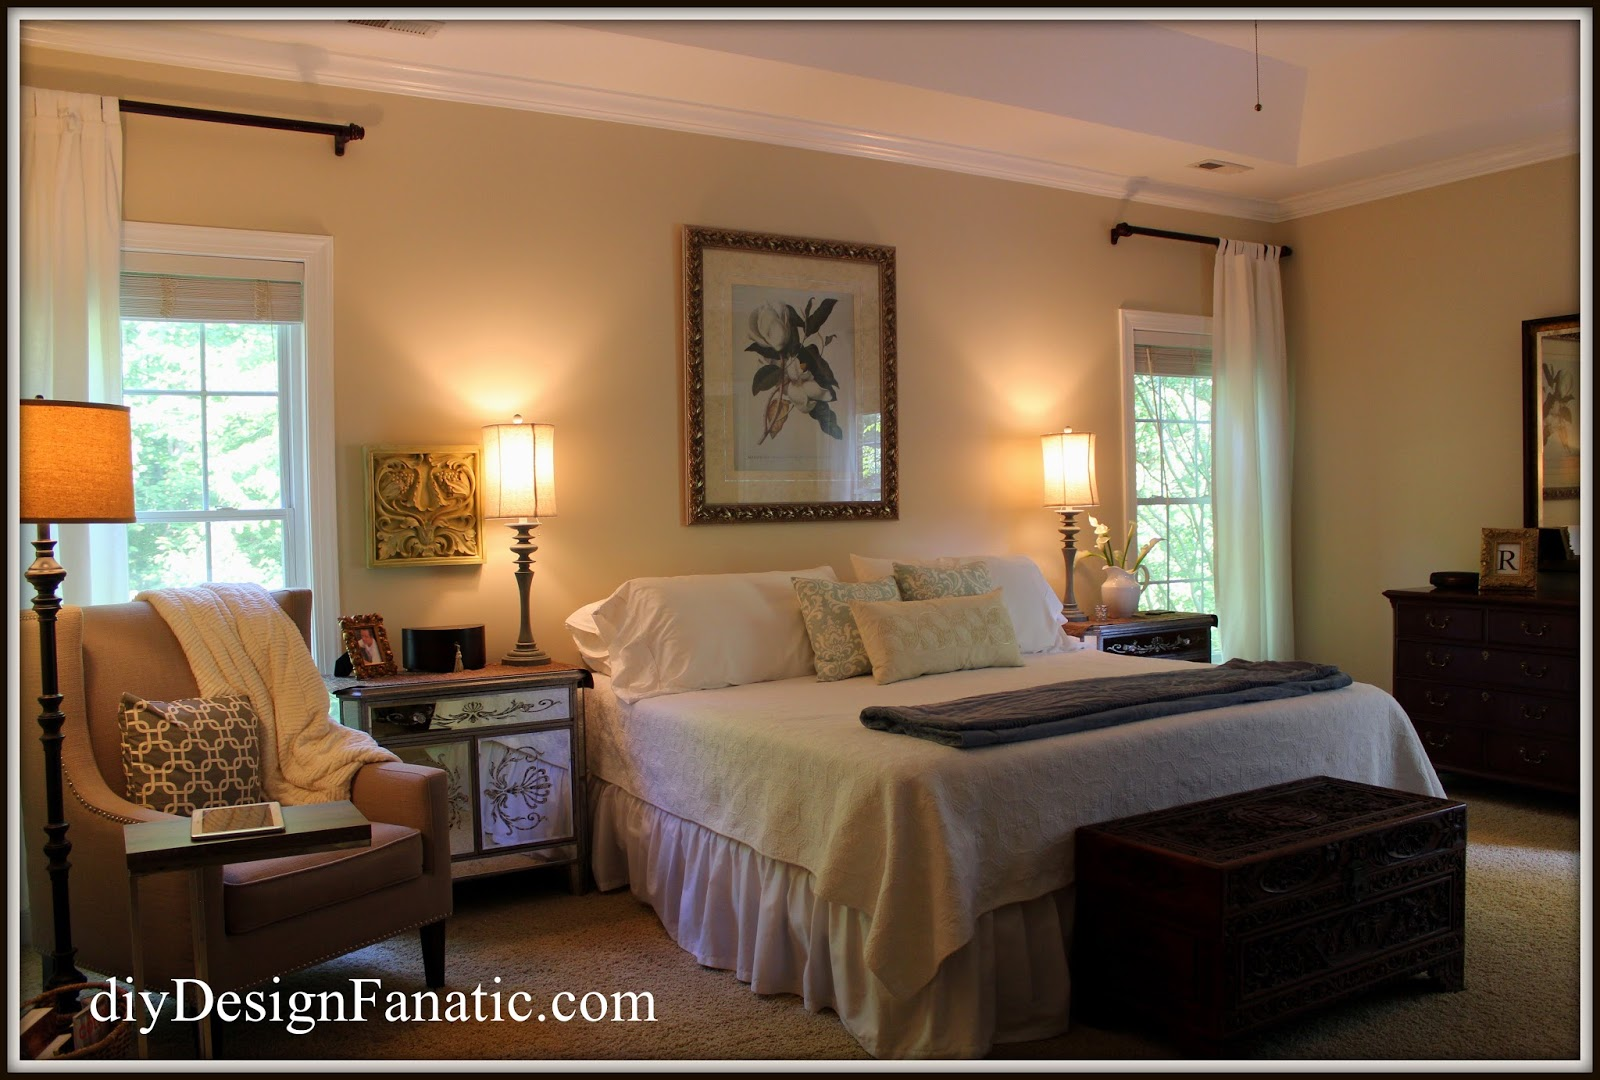 master bedroom paint colors sherwin williams. Saturday, June 6, 2015 Master Bedroom Paint Colors Sherwin Williams A